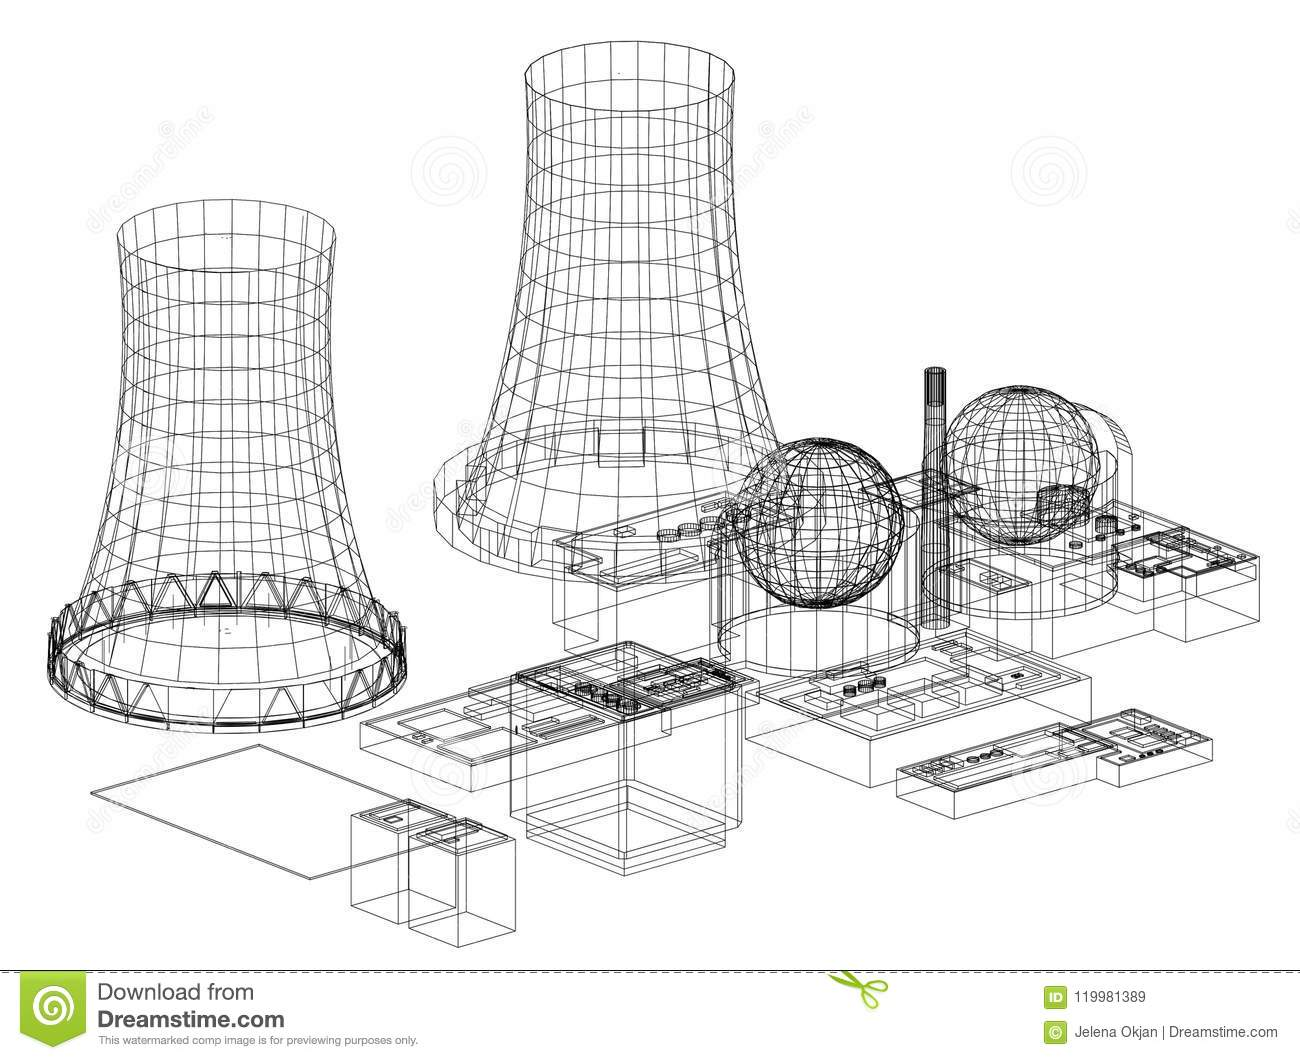 Nuclear Power Plant Reactor Architect Blueprint Isolated With Diagram Download Stock Illustration Of